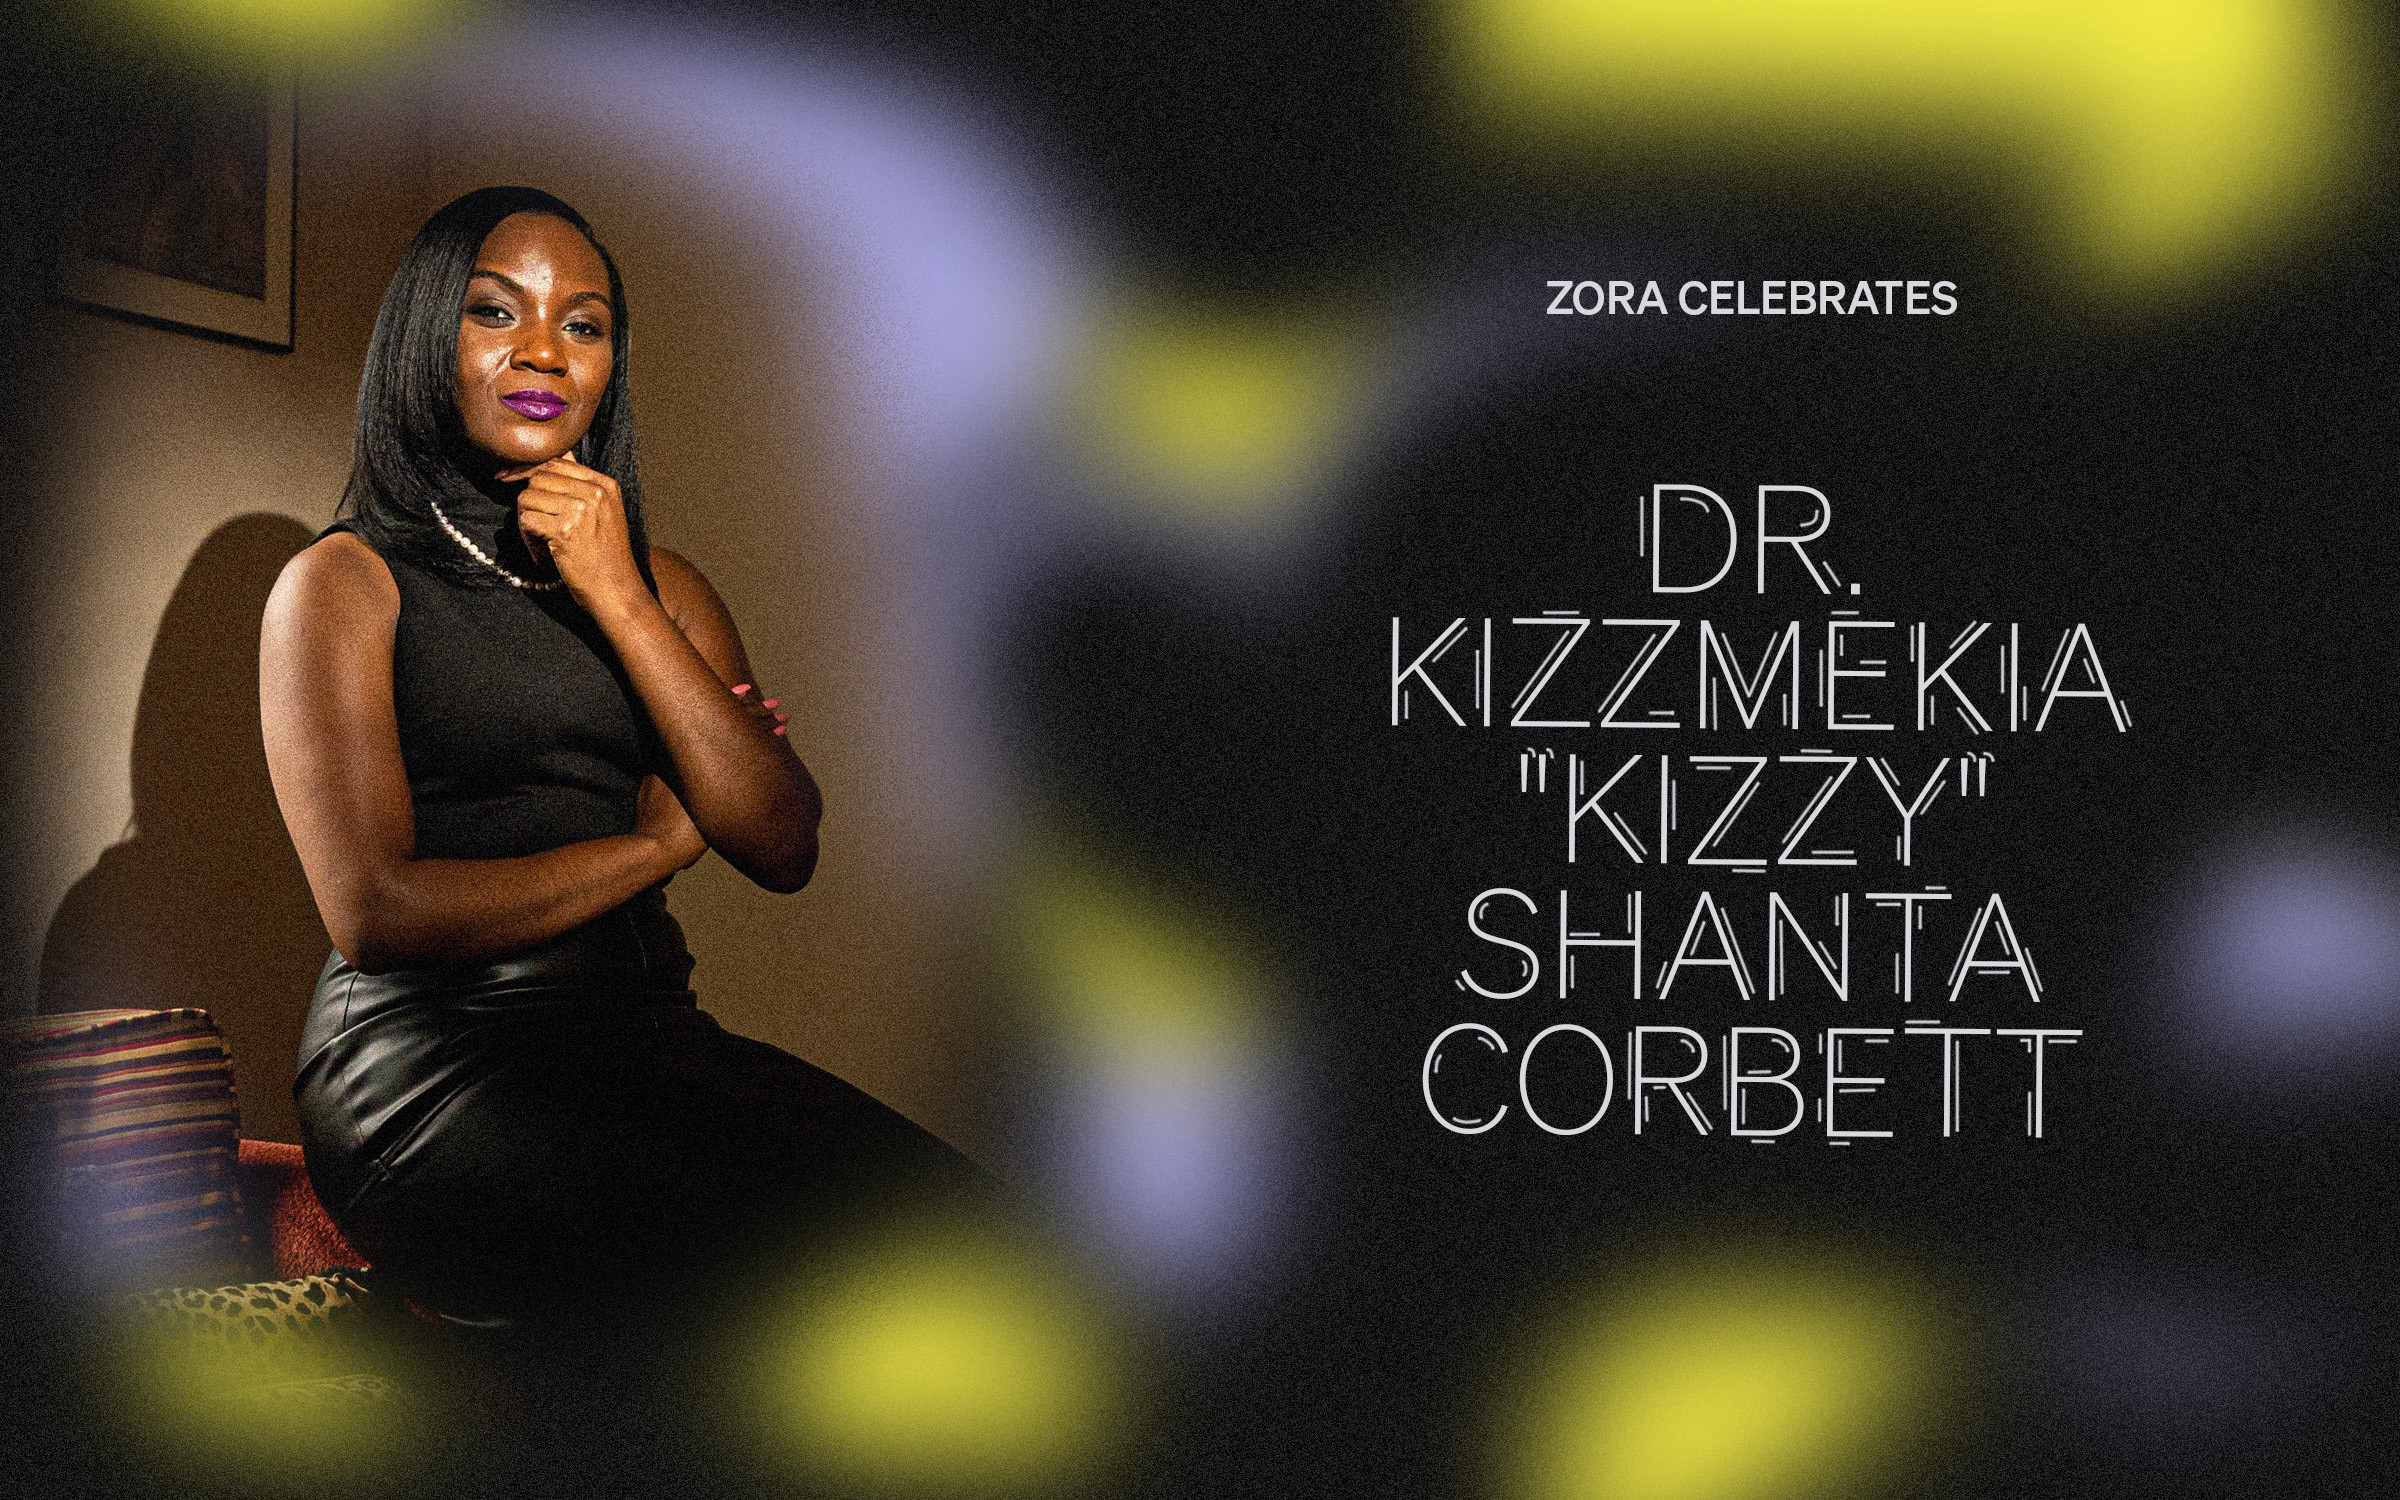 "Portrait of Dr. Kizzmekia ""Kizzy"" Shanta Corbett on the left with the words ""ZORA CELEBRATES: DR. KIZZMEKIA 'KIZZY' SHANTA CORBETT"" on the right side."